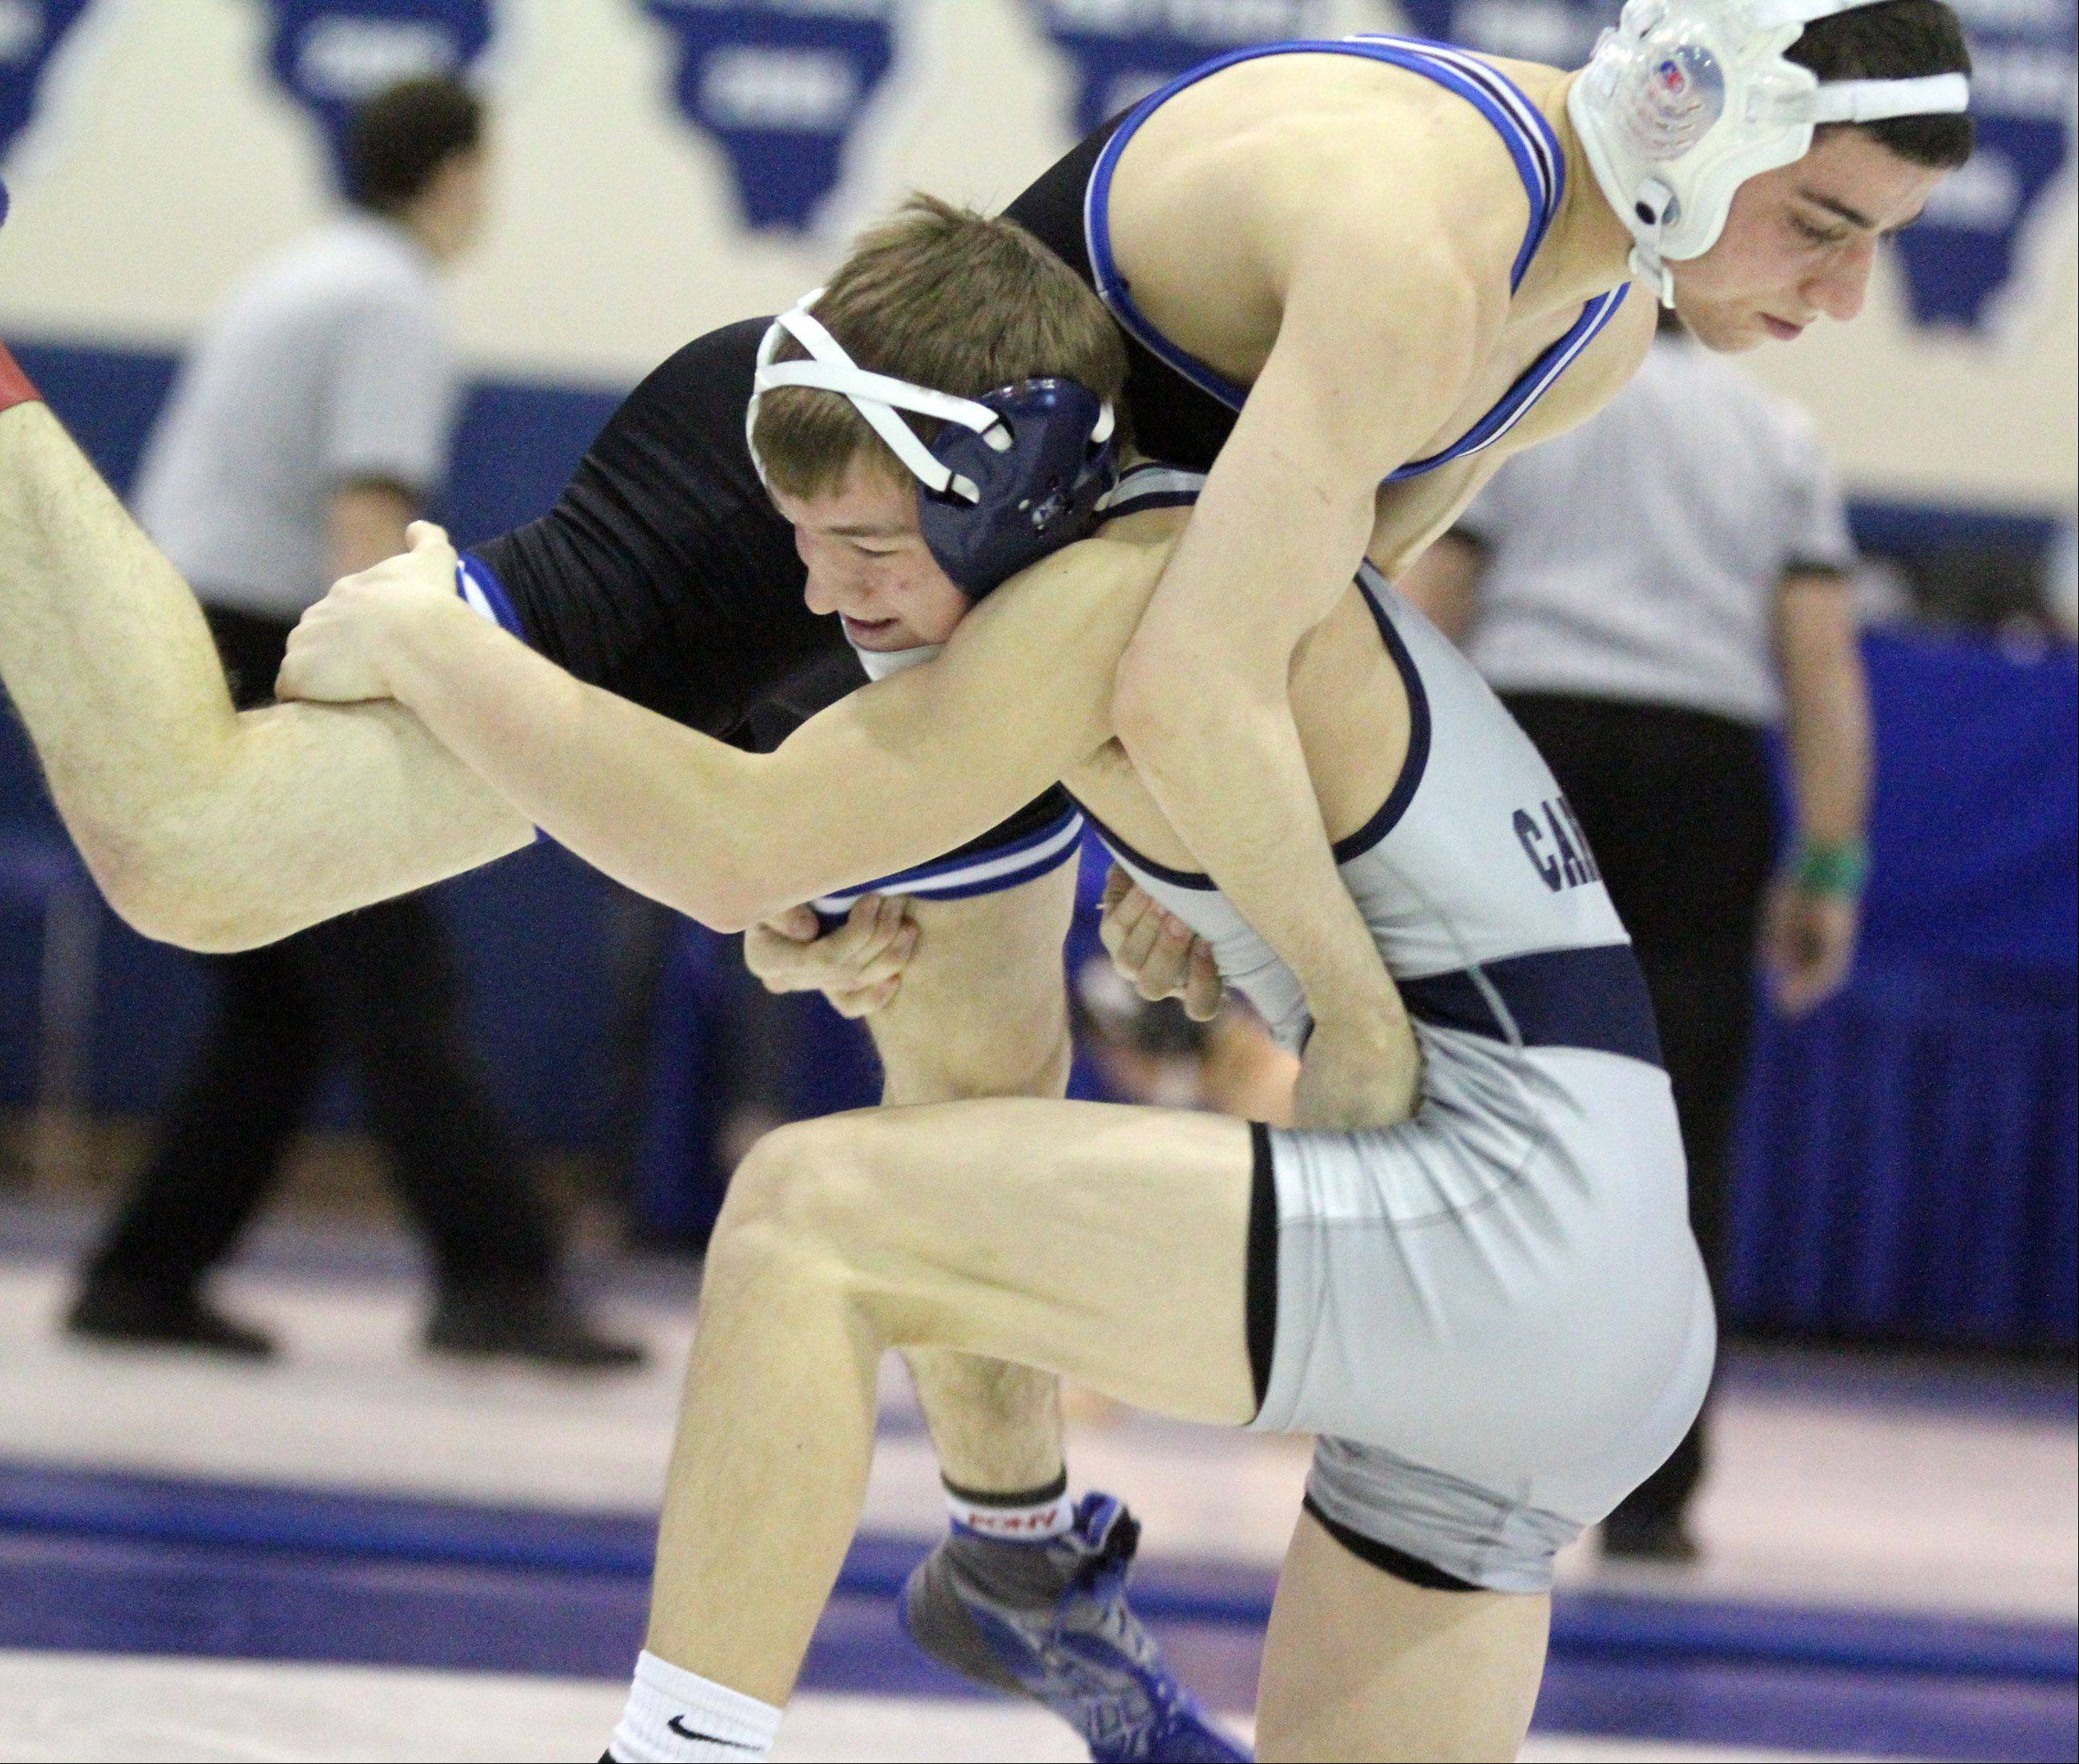 George LeClaire/gleclaire@dailyherald.comCary-Grove's Michael Cullen, bottom, wins his 113-pound championship match against Highland Park's Nate Kessler at the Class 3A individual wrestling regional at Lake Zurich on Saturday, February 2, 2013.